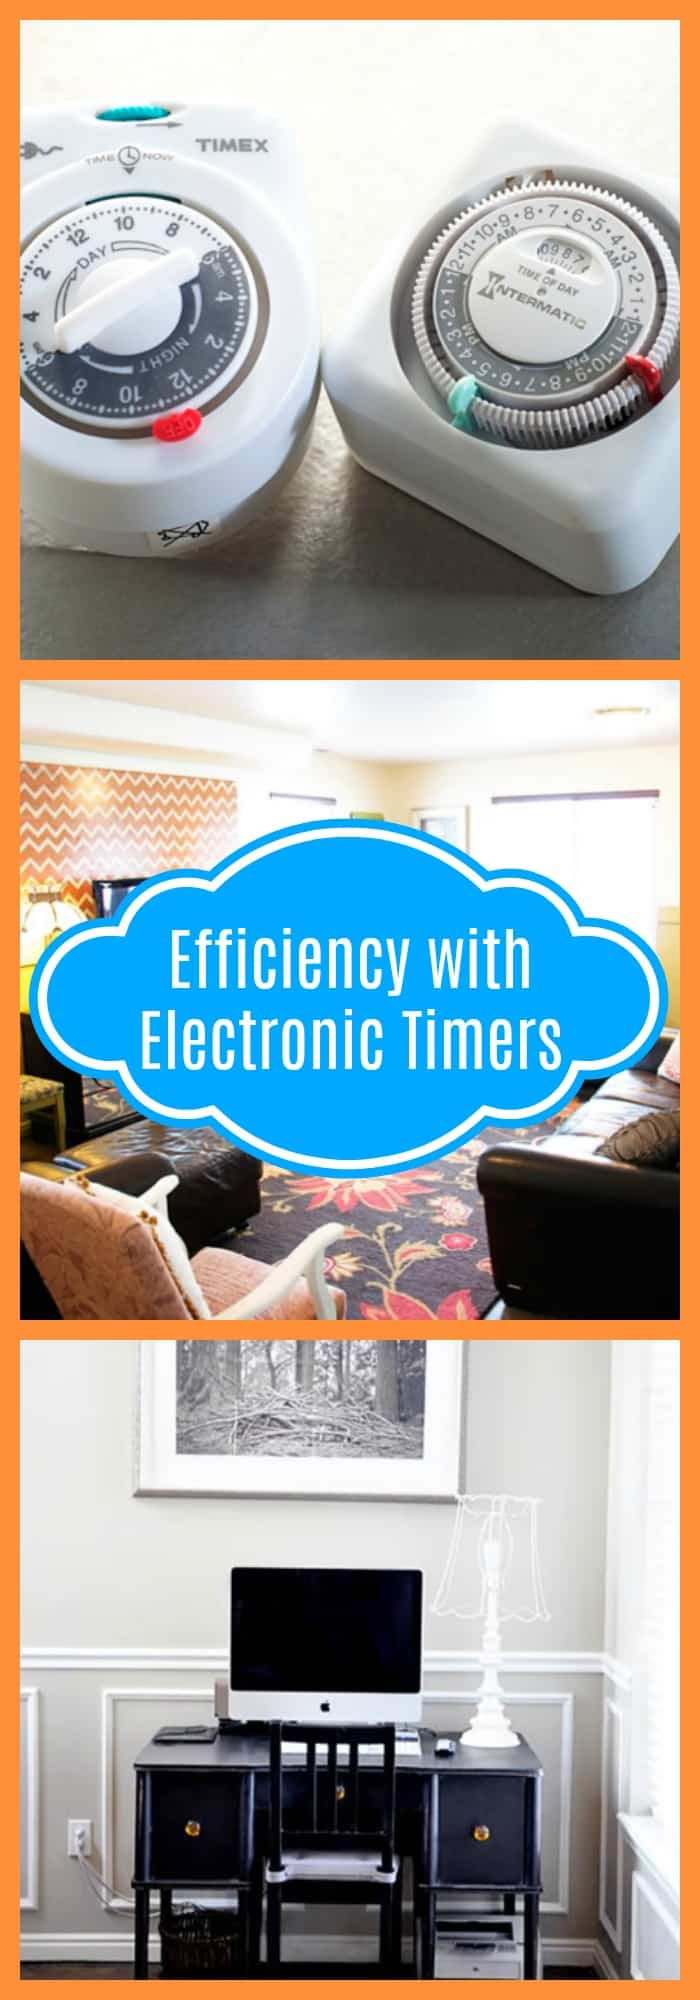 Home-Effieciency with Electronic Timers-The Organized Mom